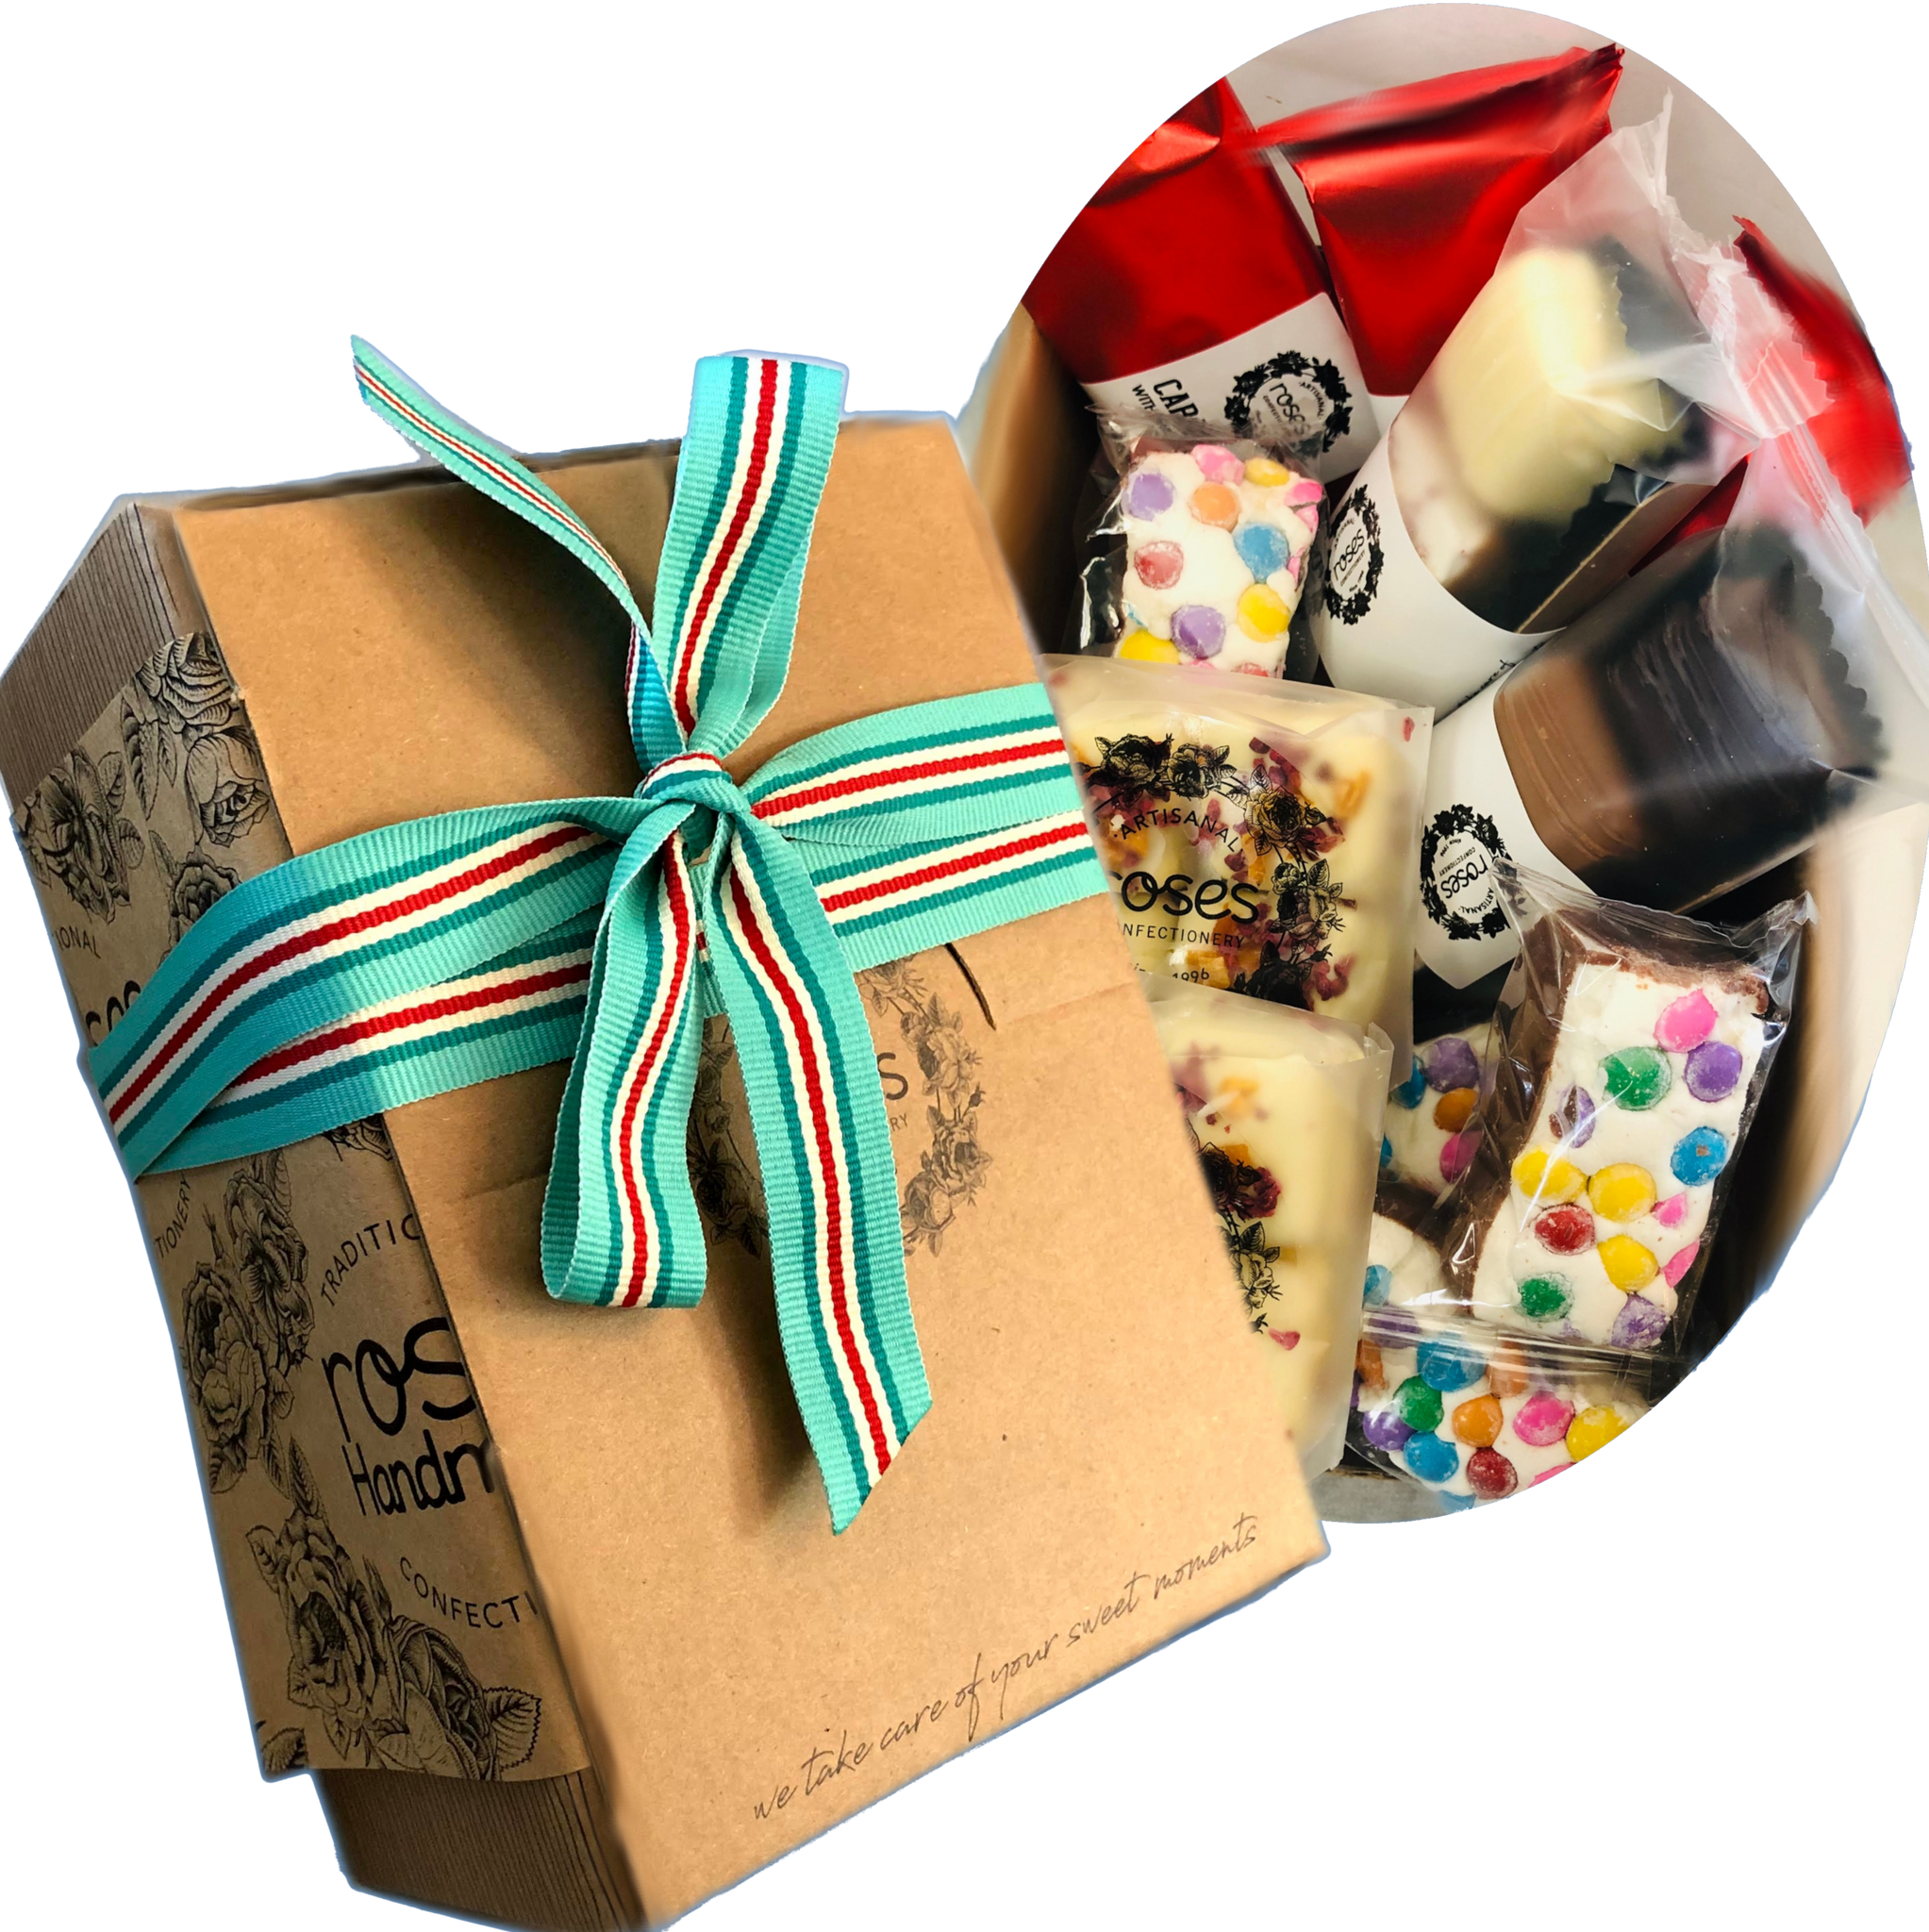 """Mallow Madness"" Hamper: receive FREE SHIPPING - use ""FREESHIP"" code at checkout. Promotion ends 31 March 2020."